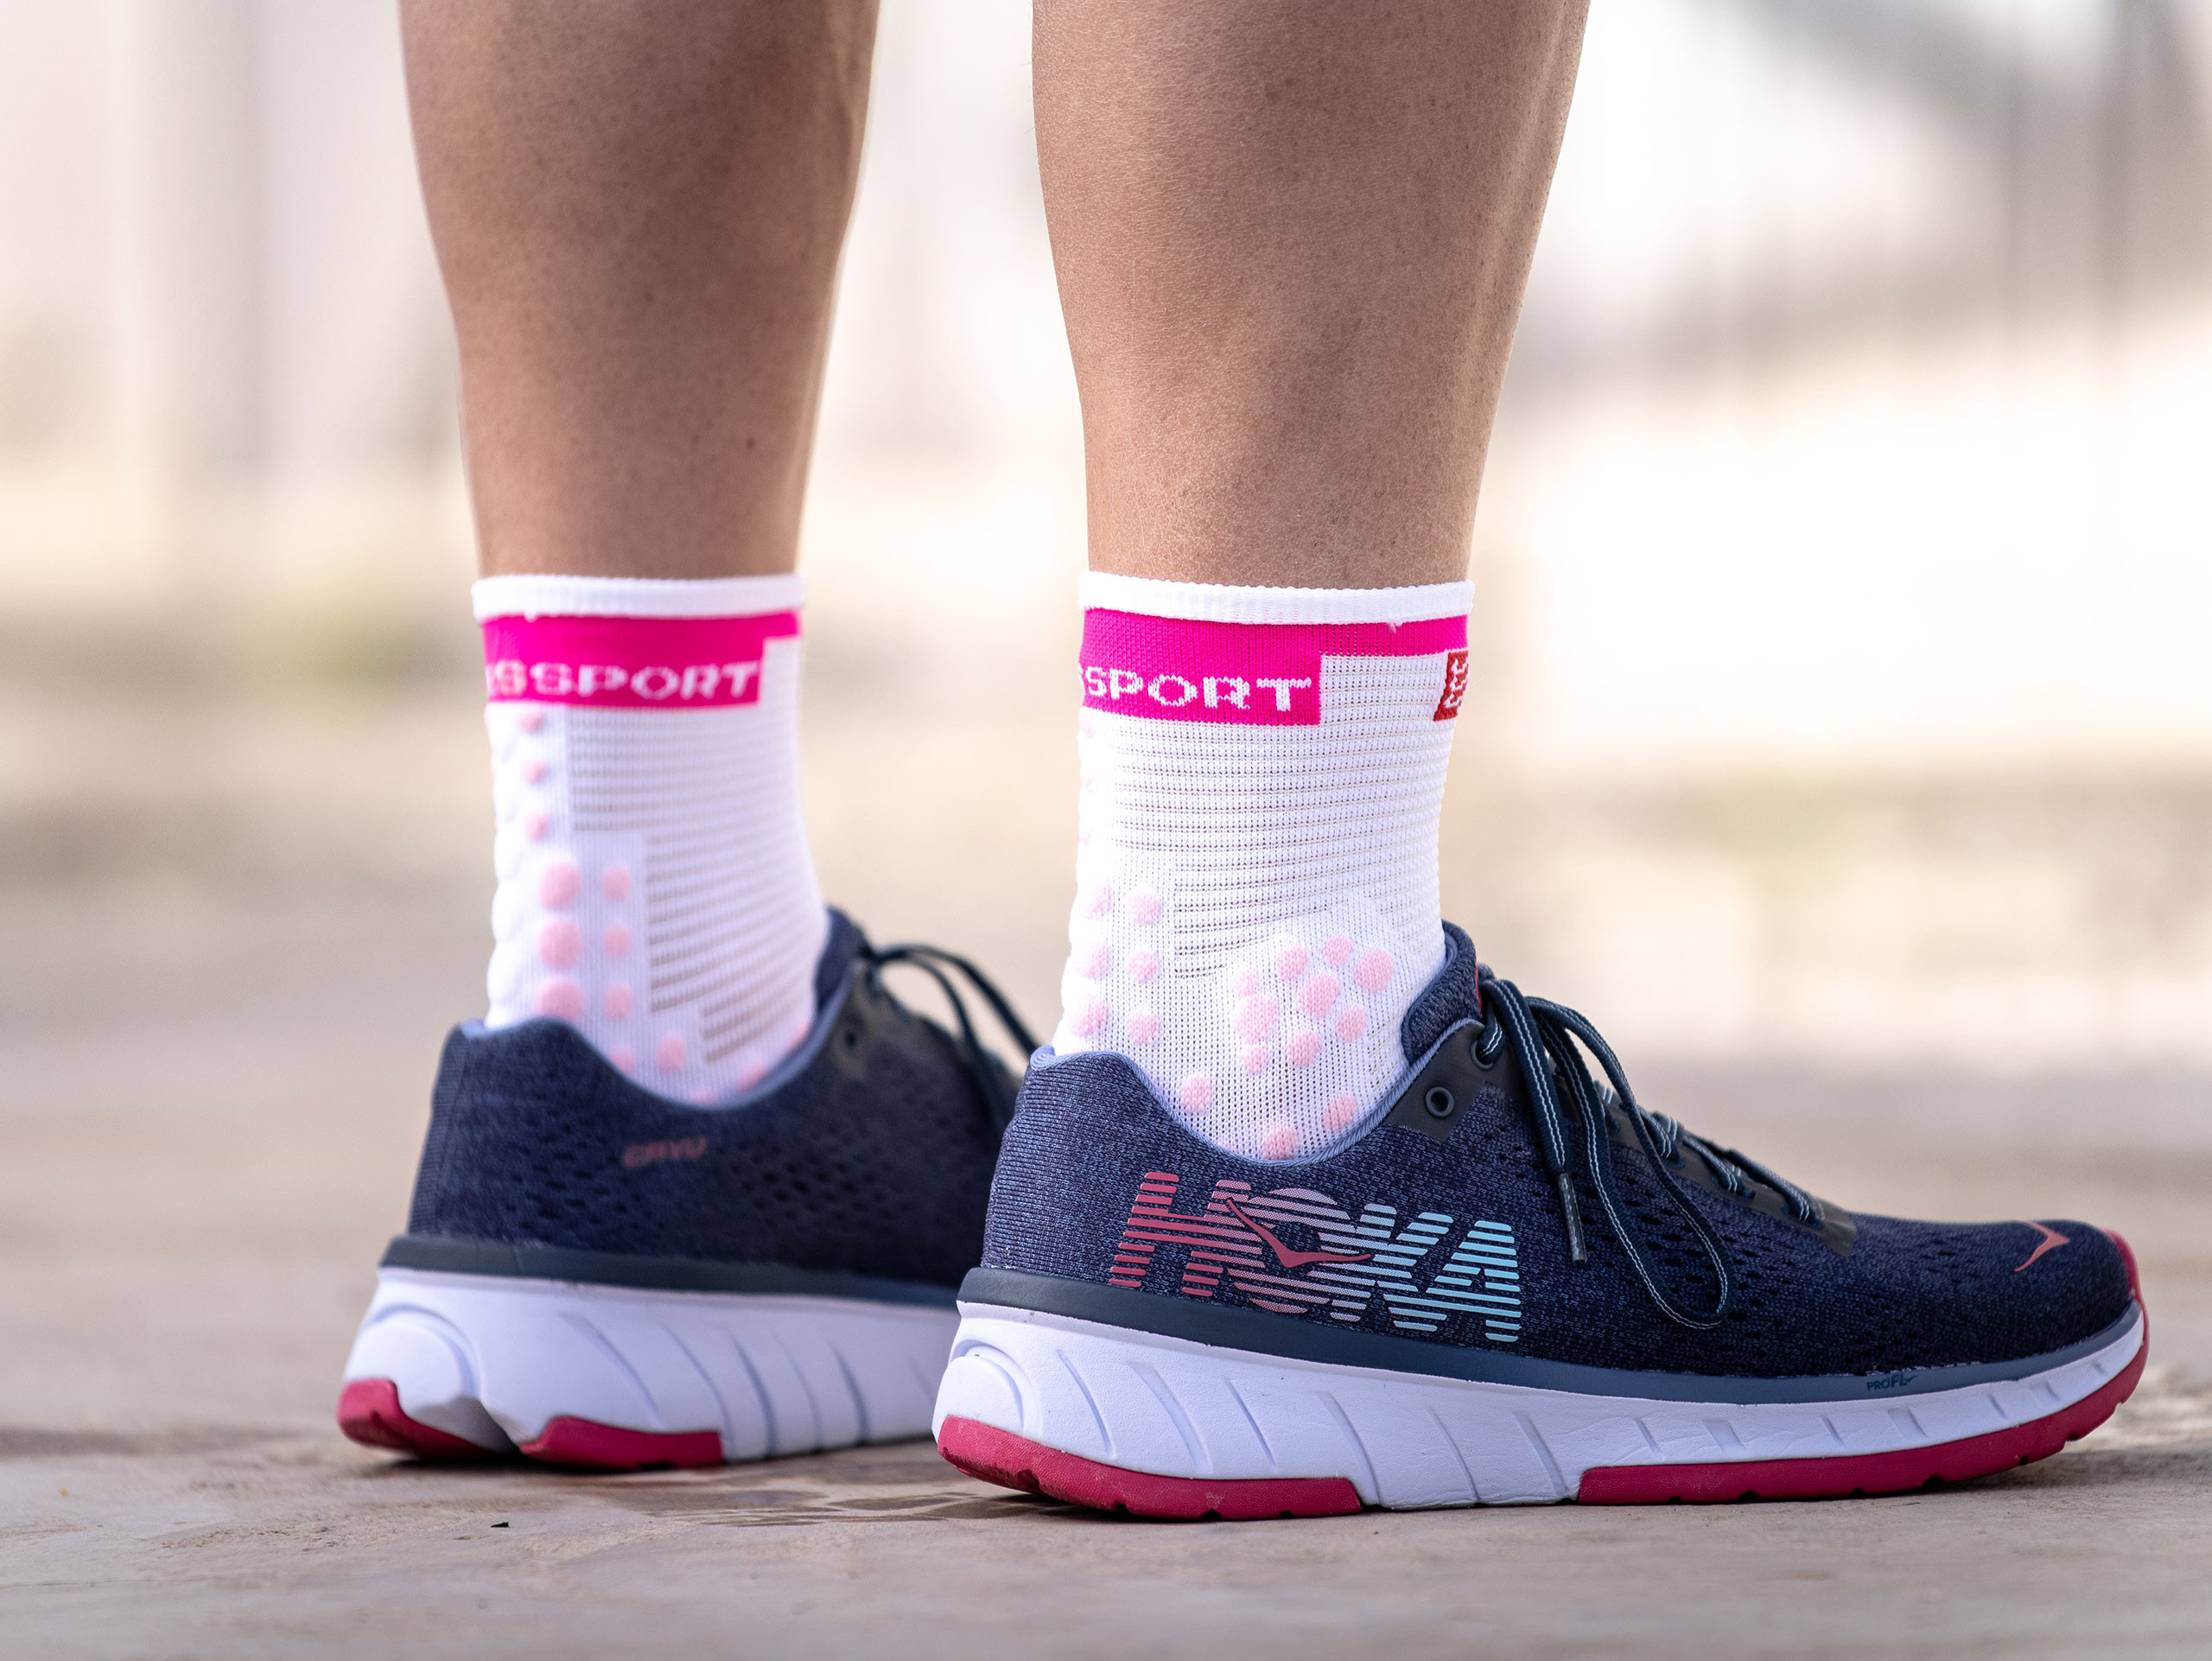 Pro racing socks v3.0 Run high white/pink